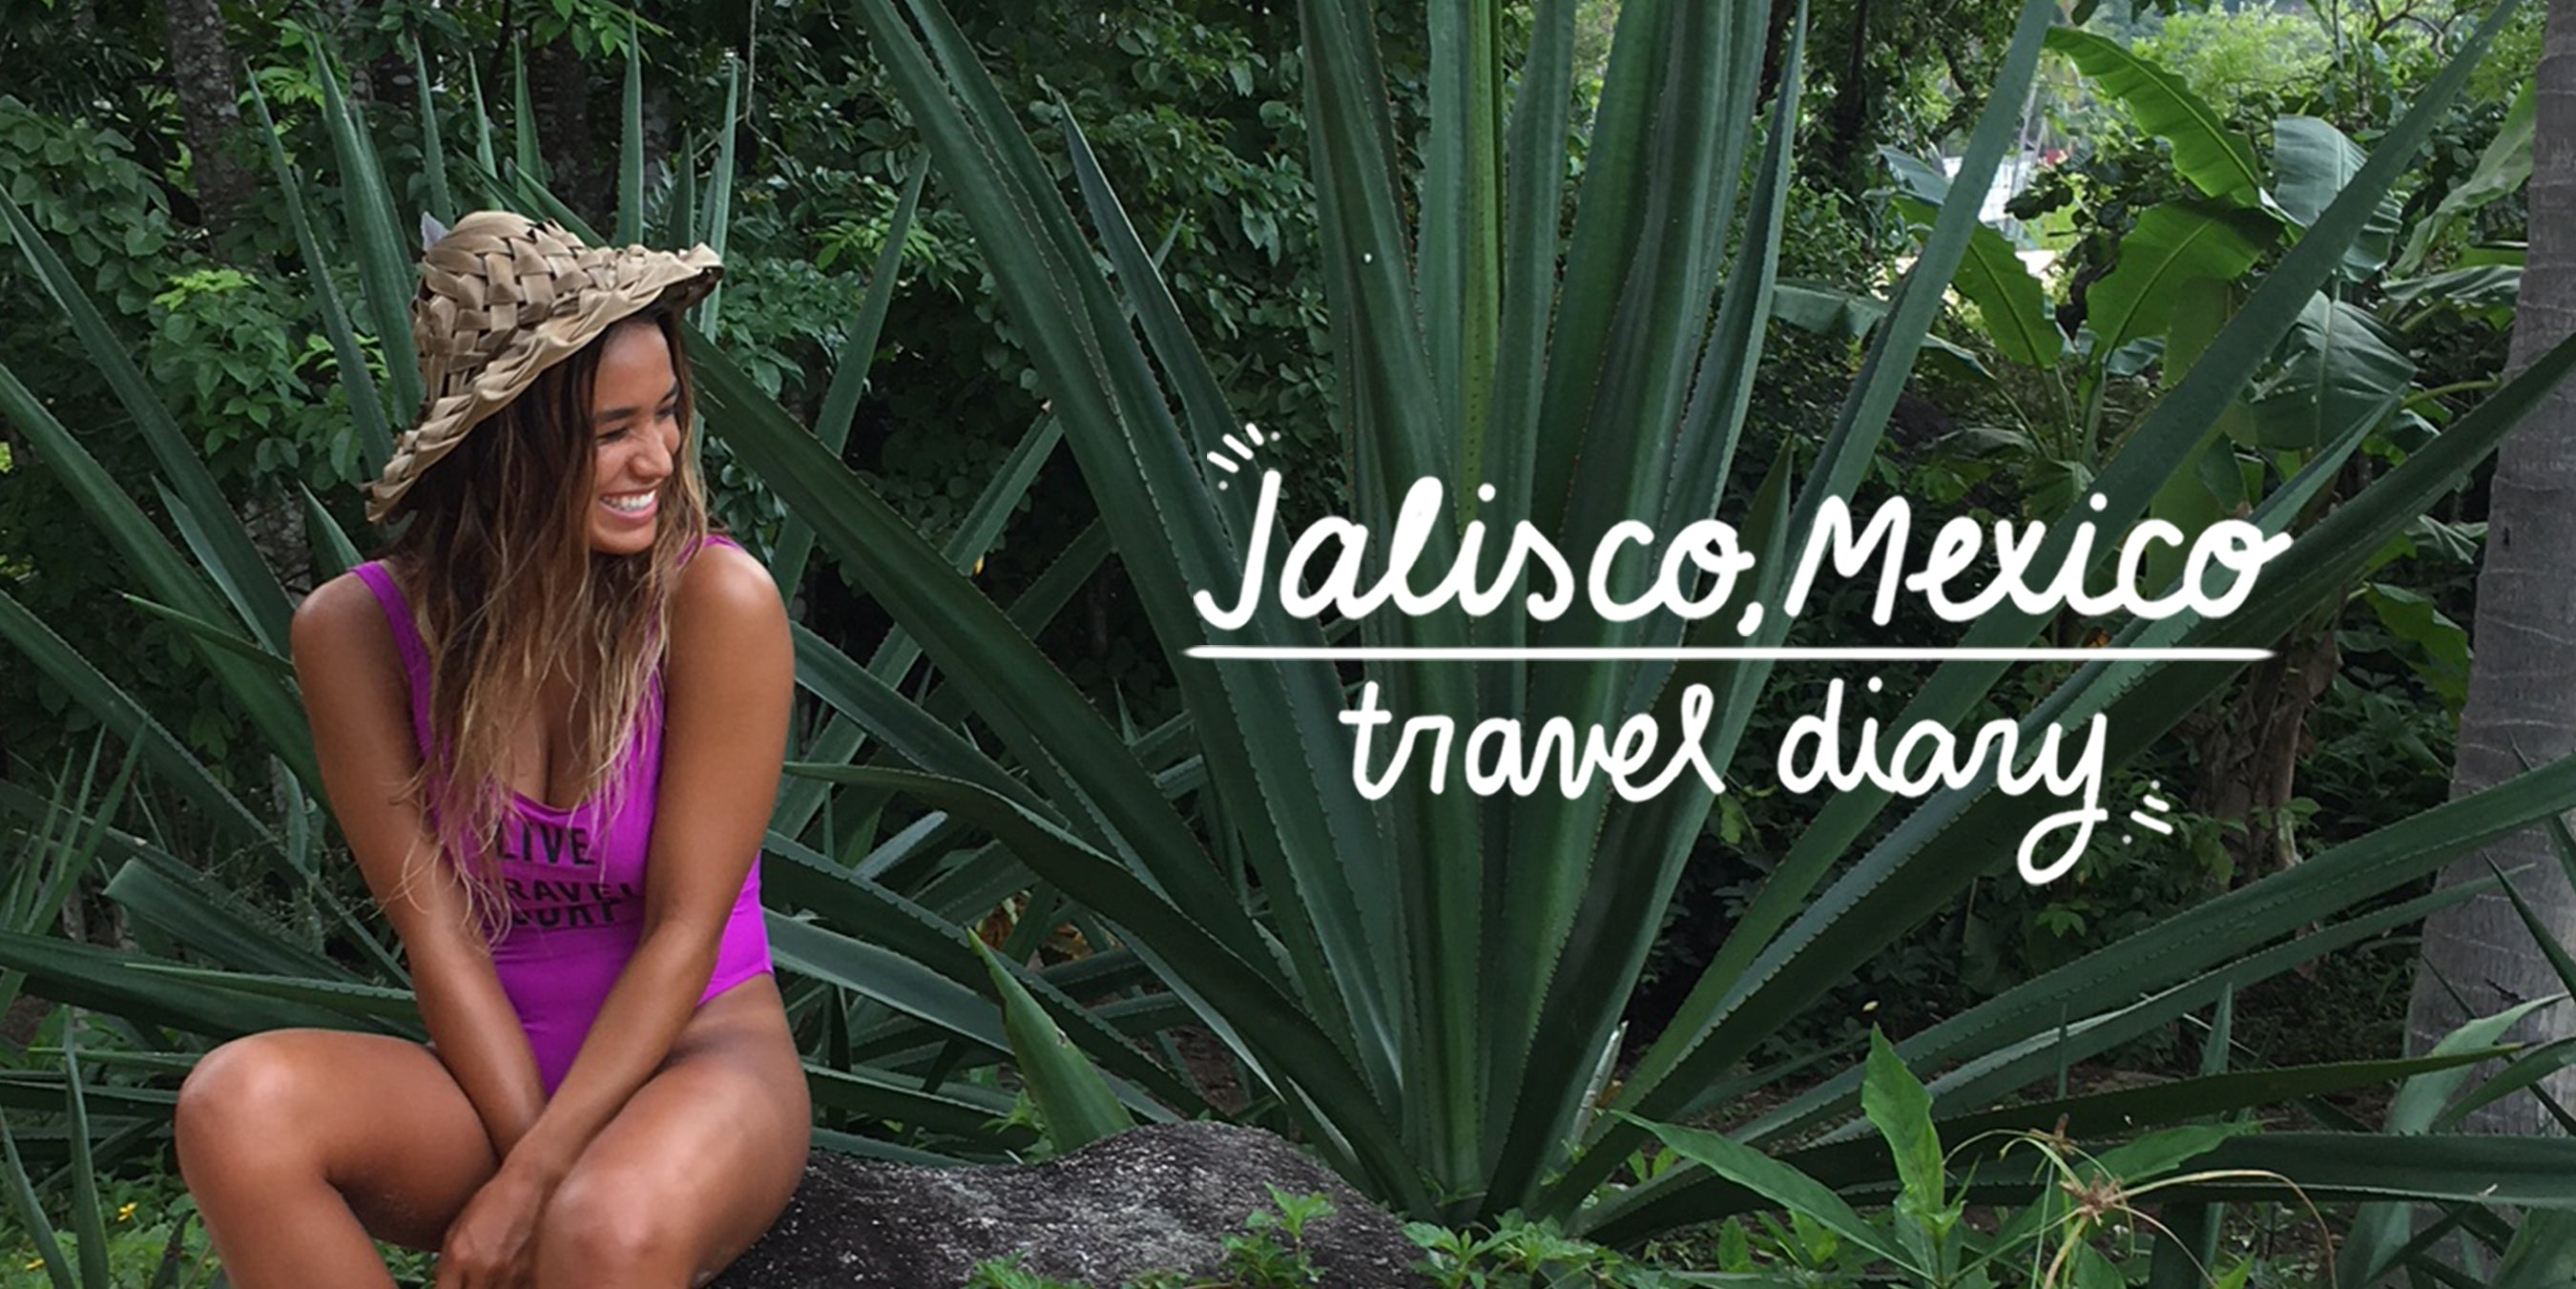 Jalisco, Mexico Travel Diary | Seeking a Hidden Gem